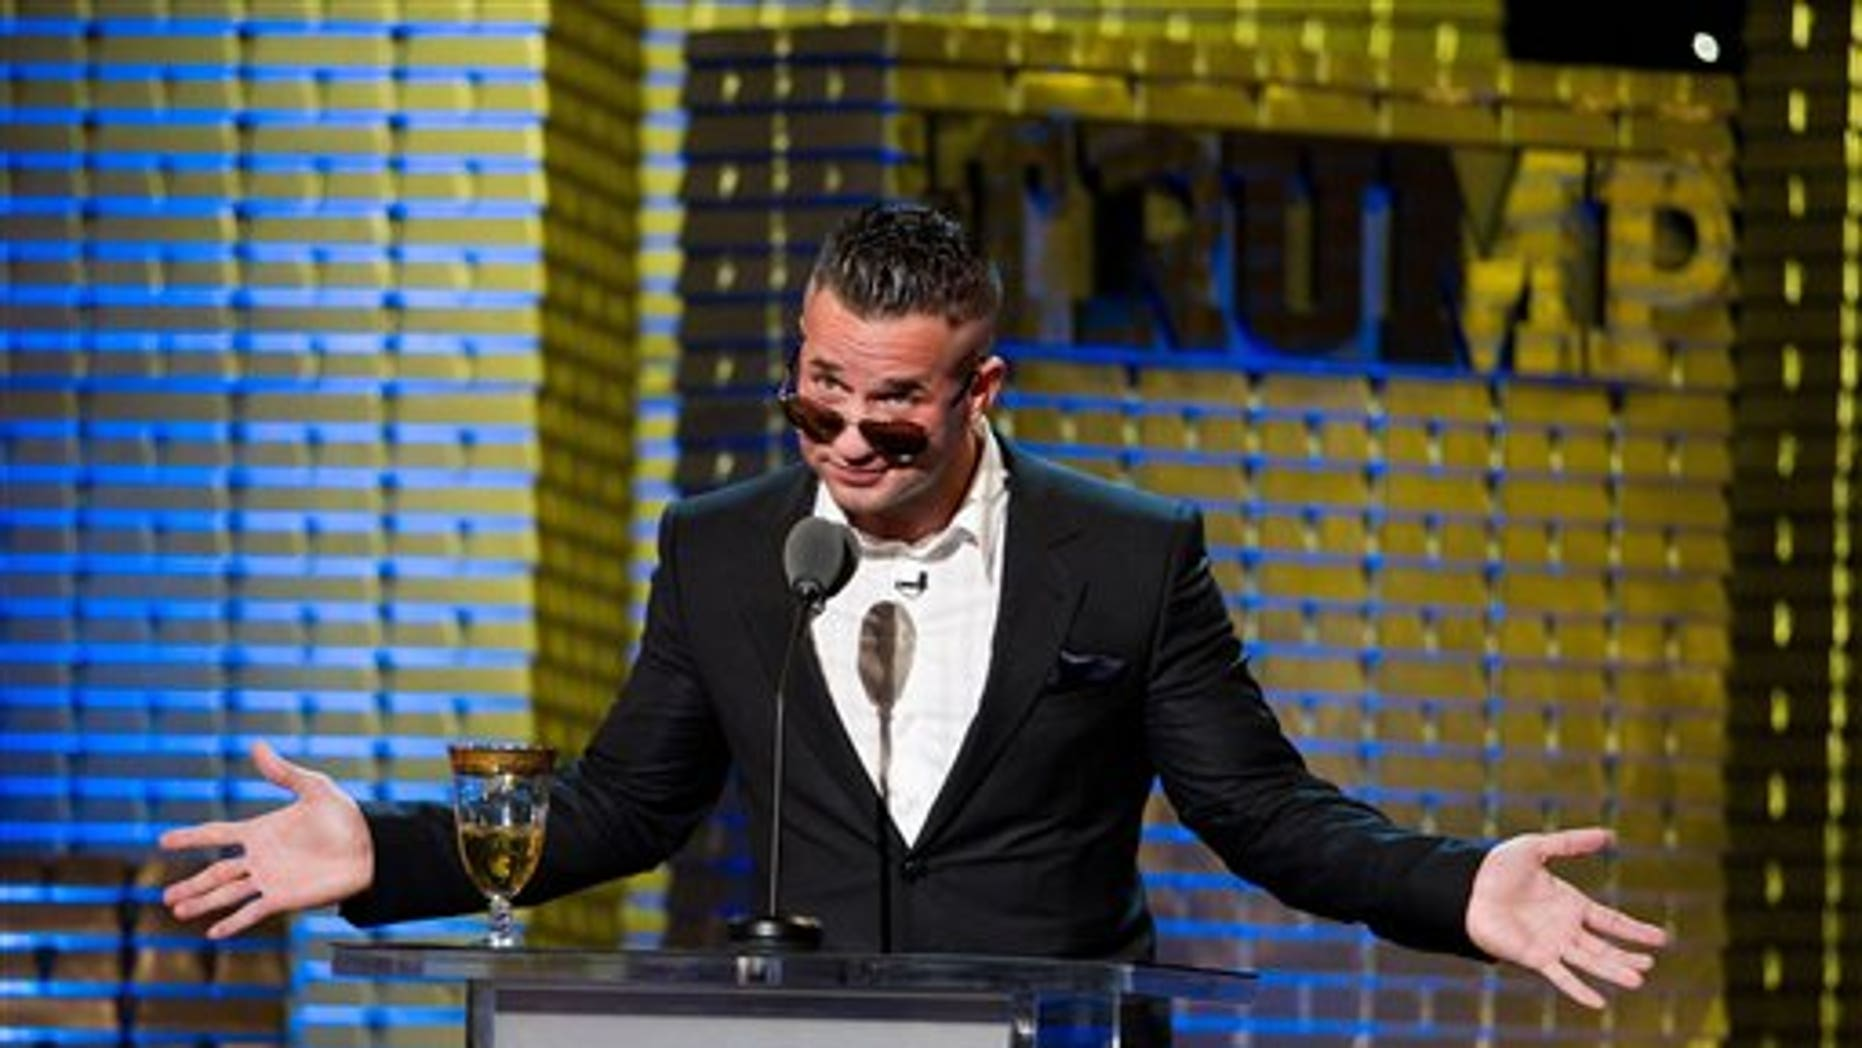 """March 9: Mike """"The Situation"""" Sorrentino appears onstage at the Comedy Central Roast of Donald Trump in New York. (AP)"""